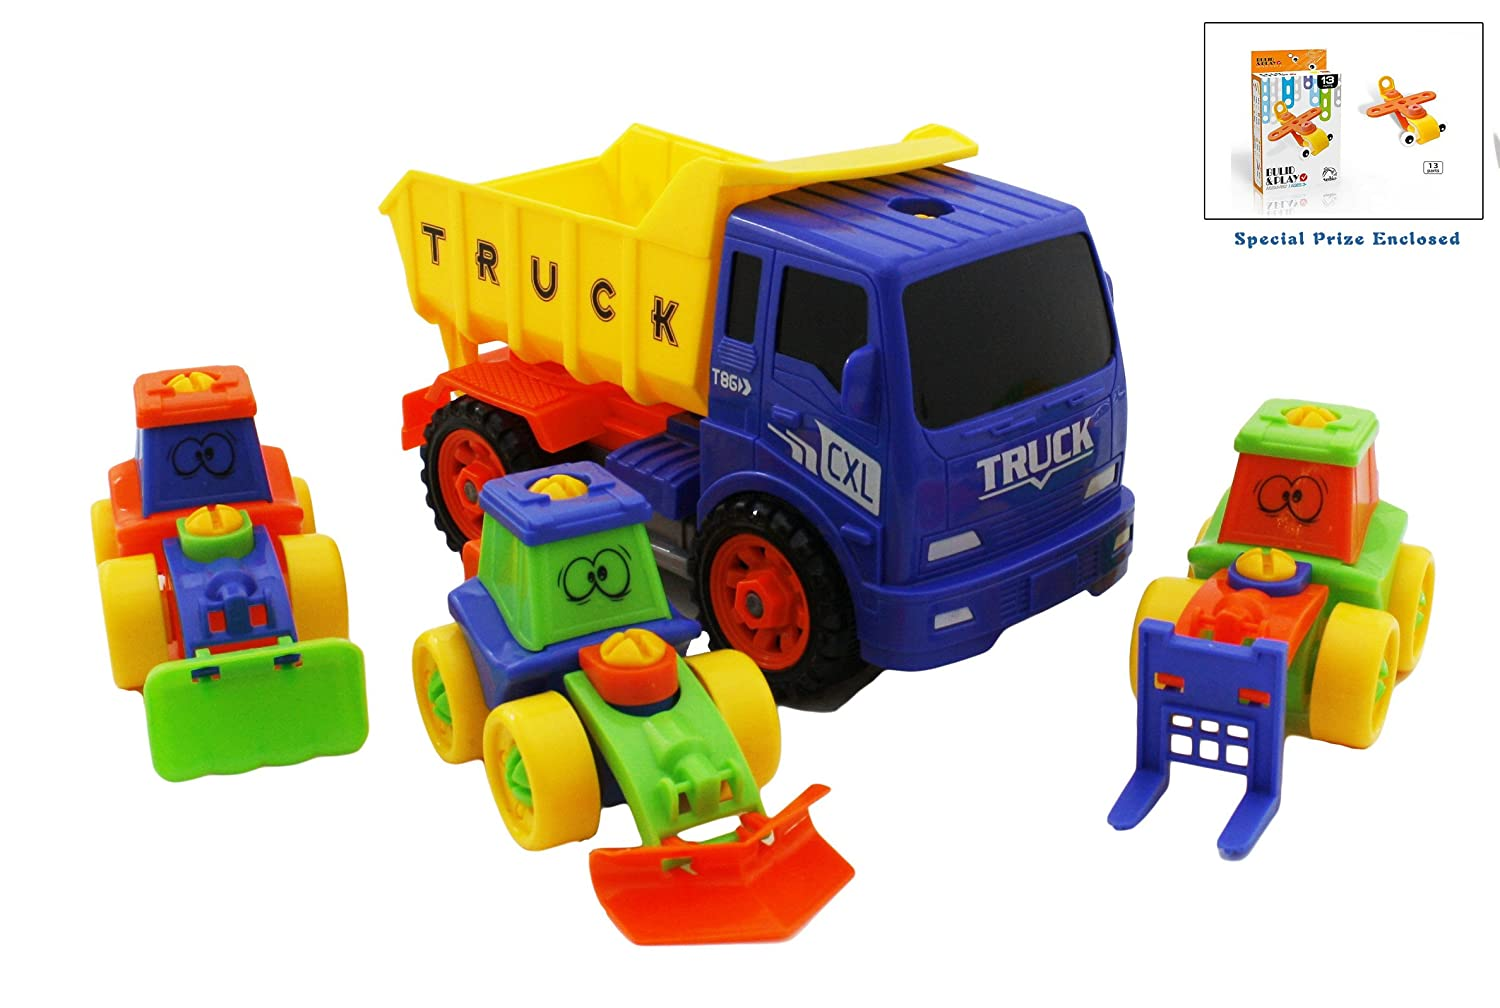 Fun Building Multifunctional Take-A-Part Kids Tractor Construction Dump Truck With 3 Mini Bulldozers Included, Wheel Loaders and Excavator Free-Wheeling Vehicle, Sand Box   B01MD1BNBZ